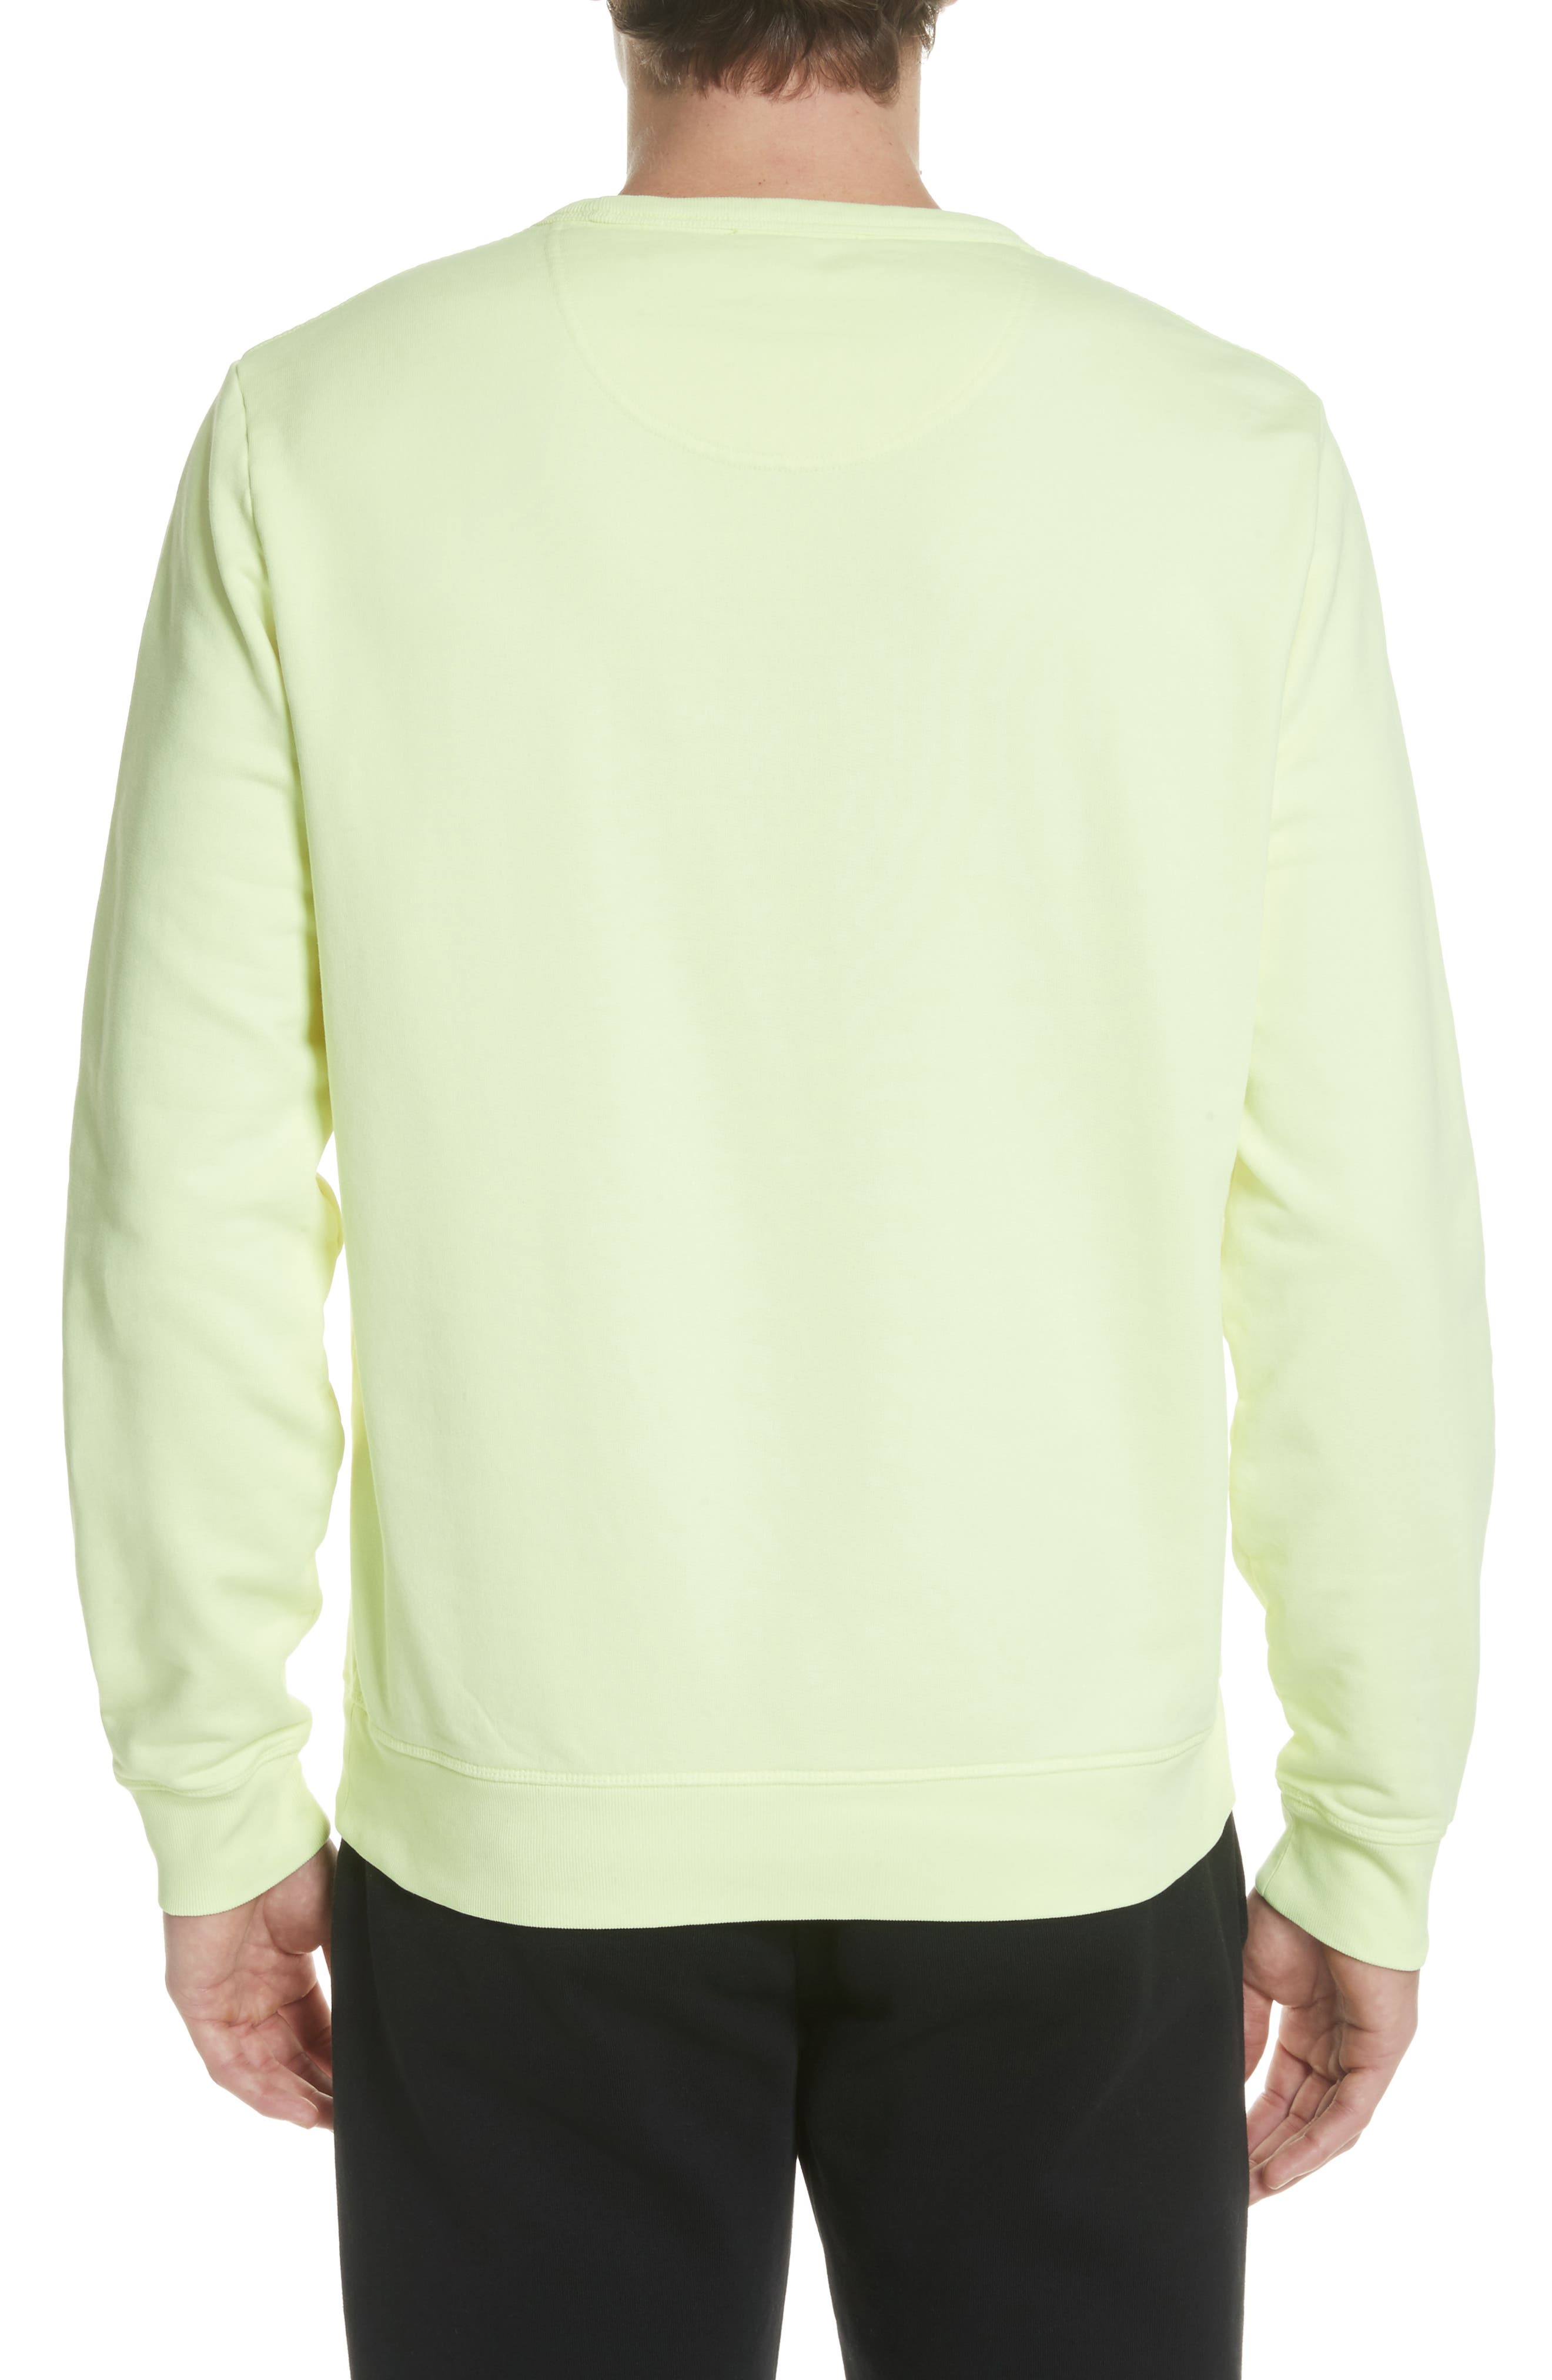 Sauer Graphic Crewneck Sweatshirt,                             Alternate thumbnail 2, color,                             Bright Lemon